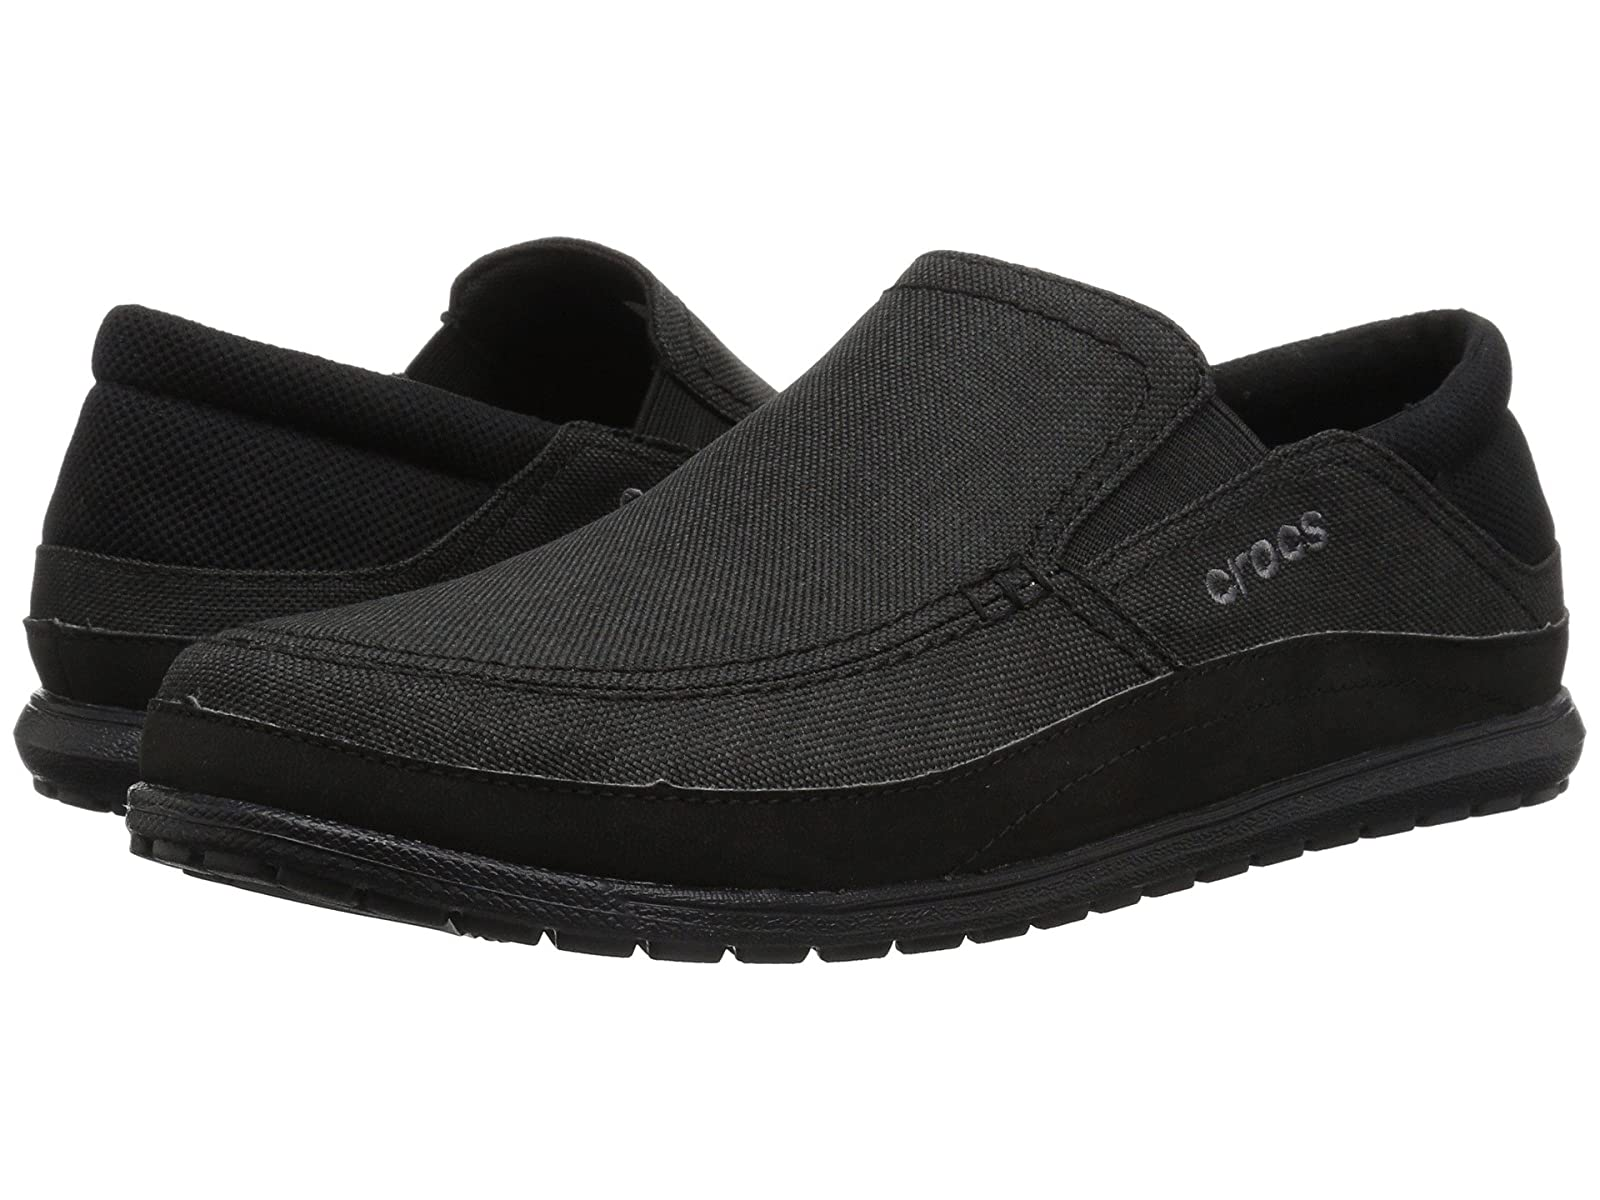 Crocs Santa Cruz Playa Slip-OnAtmospheric grades have affordable shoes